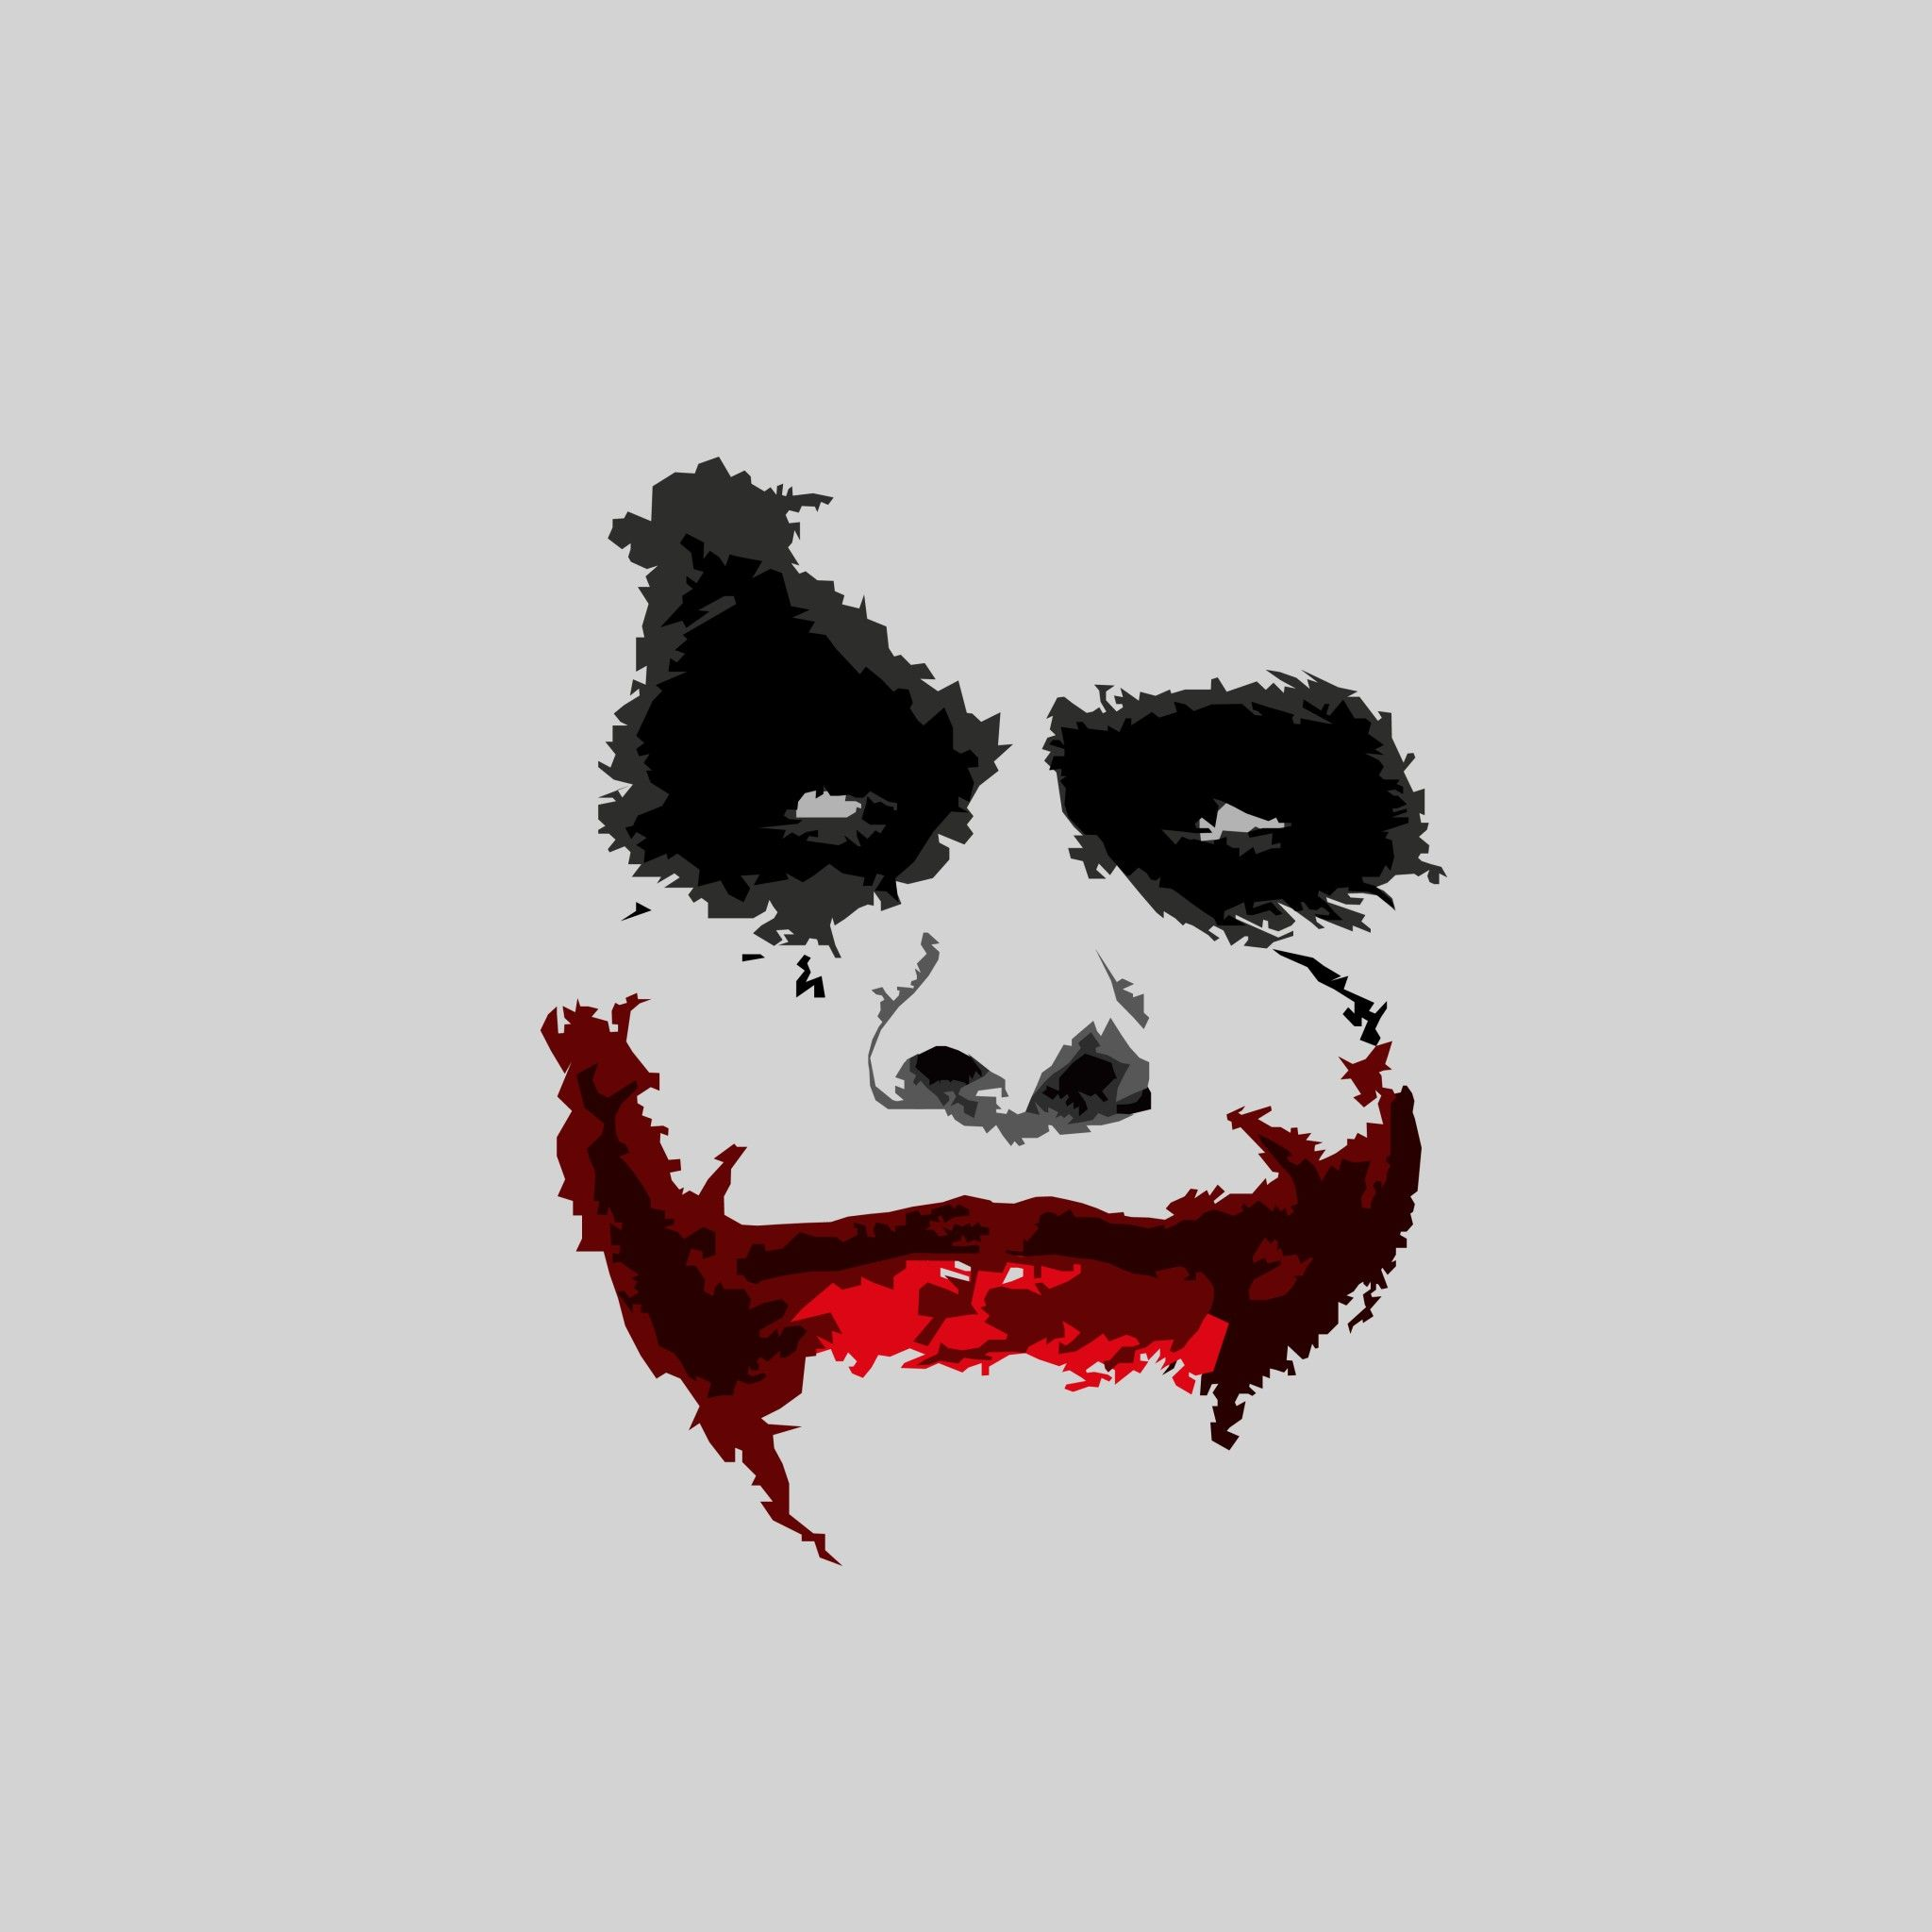 Tap To See More Suicide Squad Wallpapers @mobile9